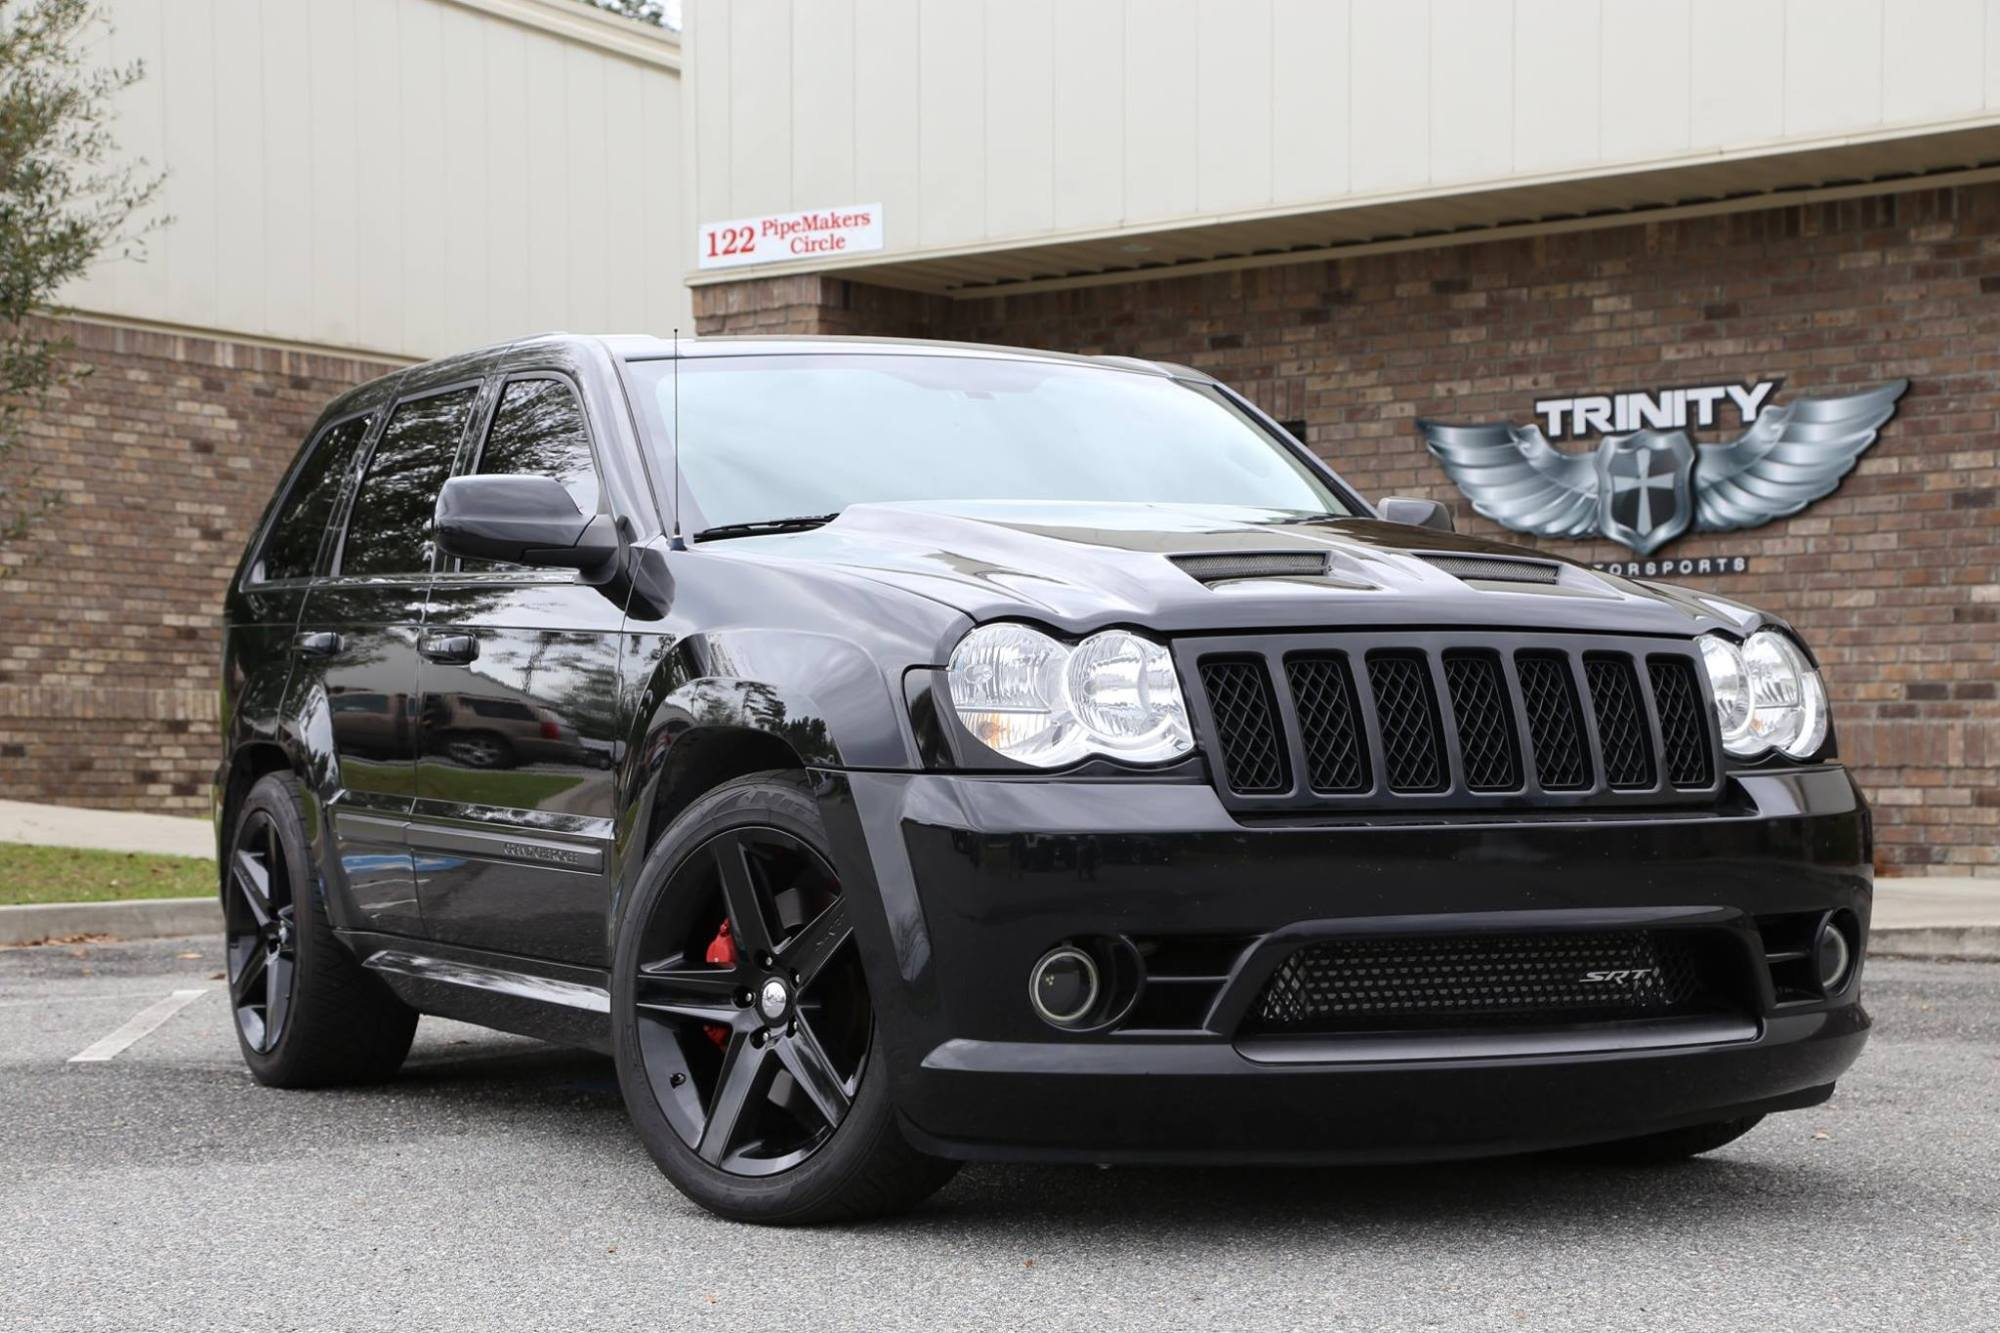 hight resolution of demonized srt8 grand cherokee